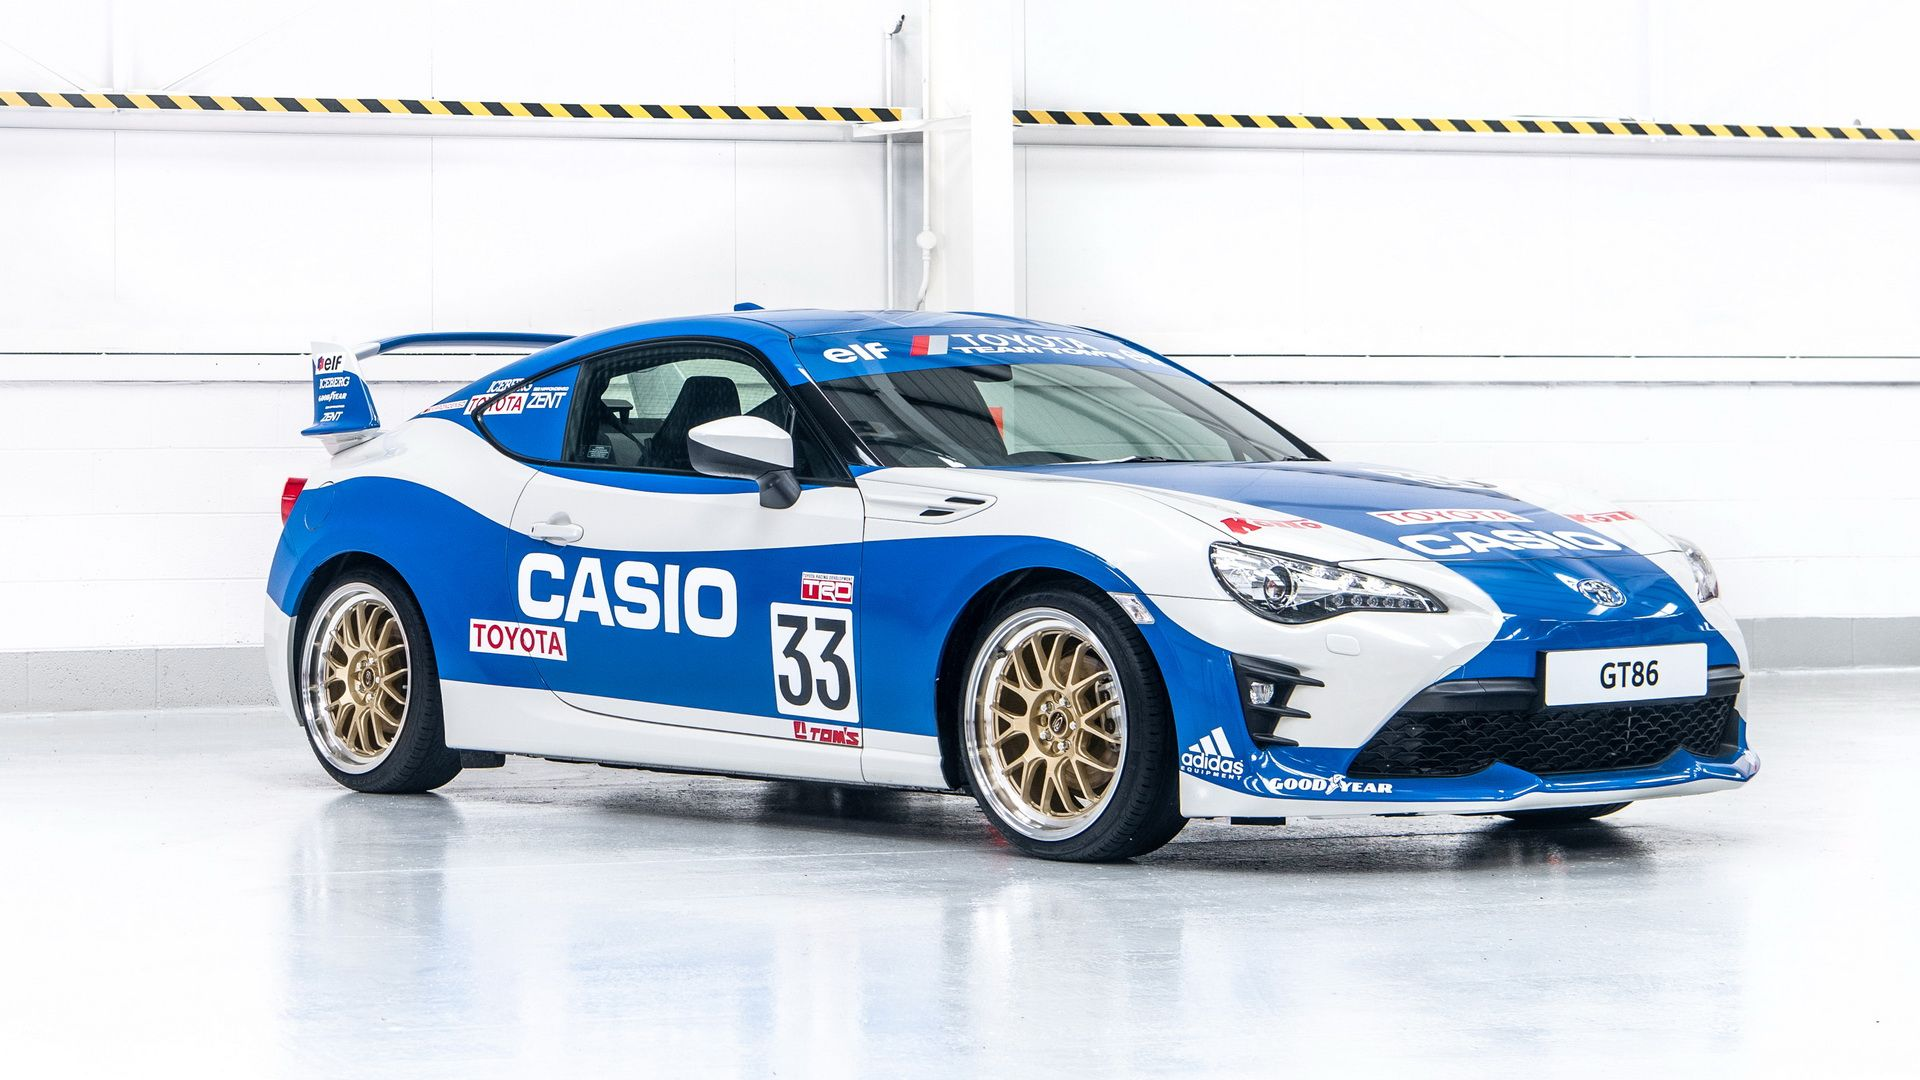 toyota-gt86-heritage-livery-24-hours-of-le-mans-3